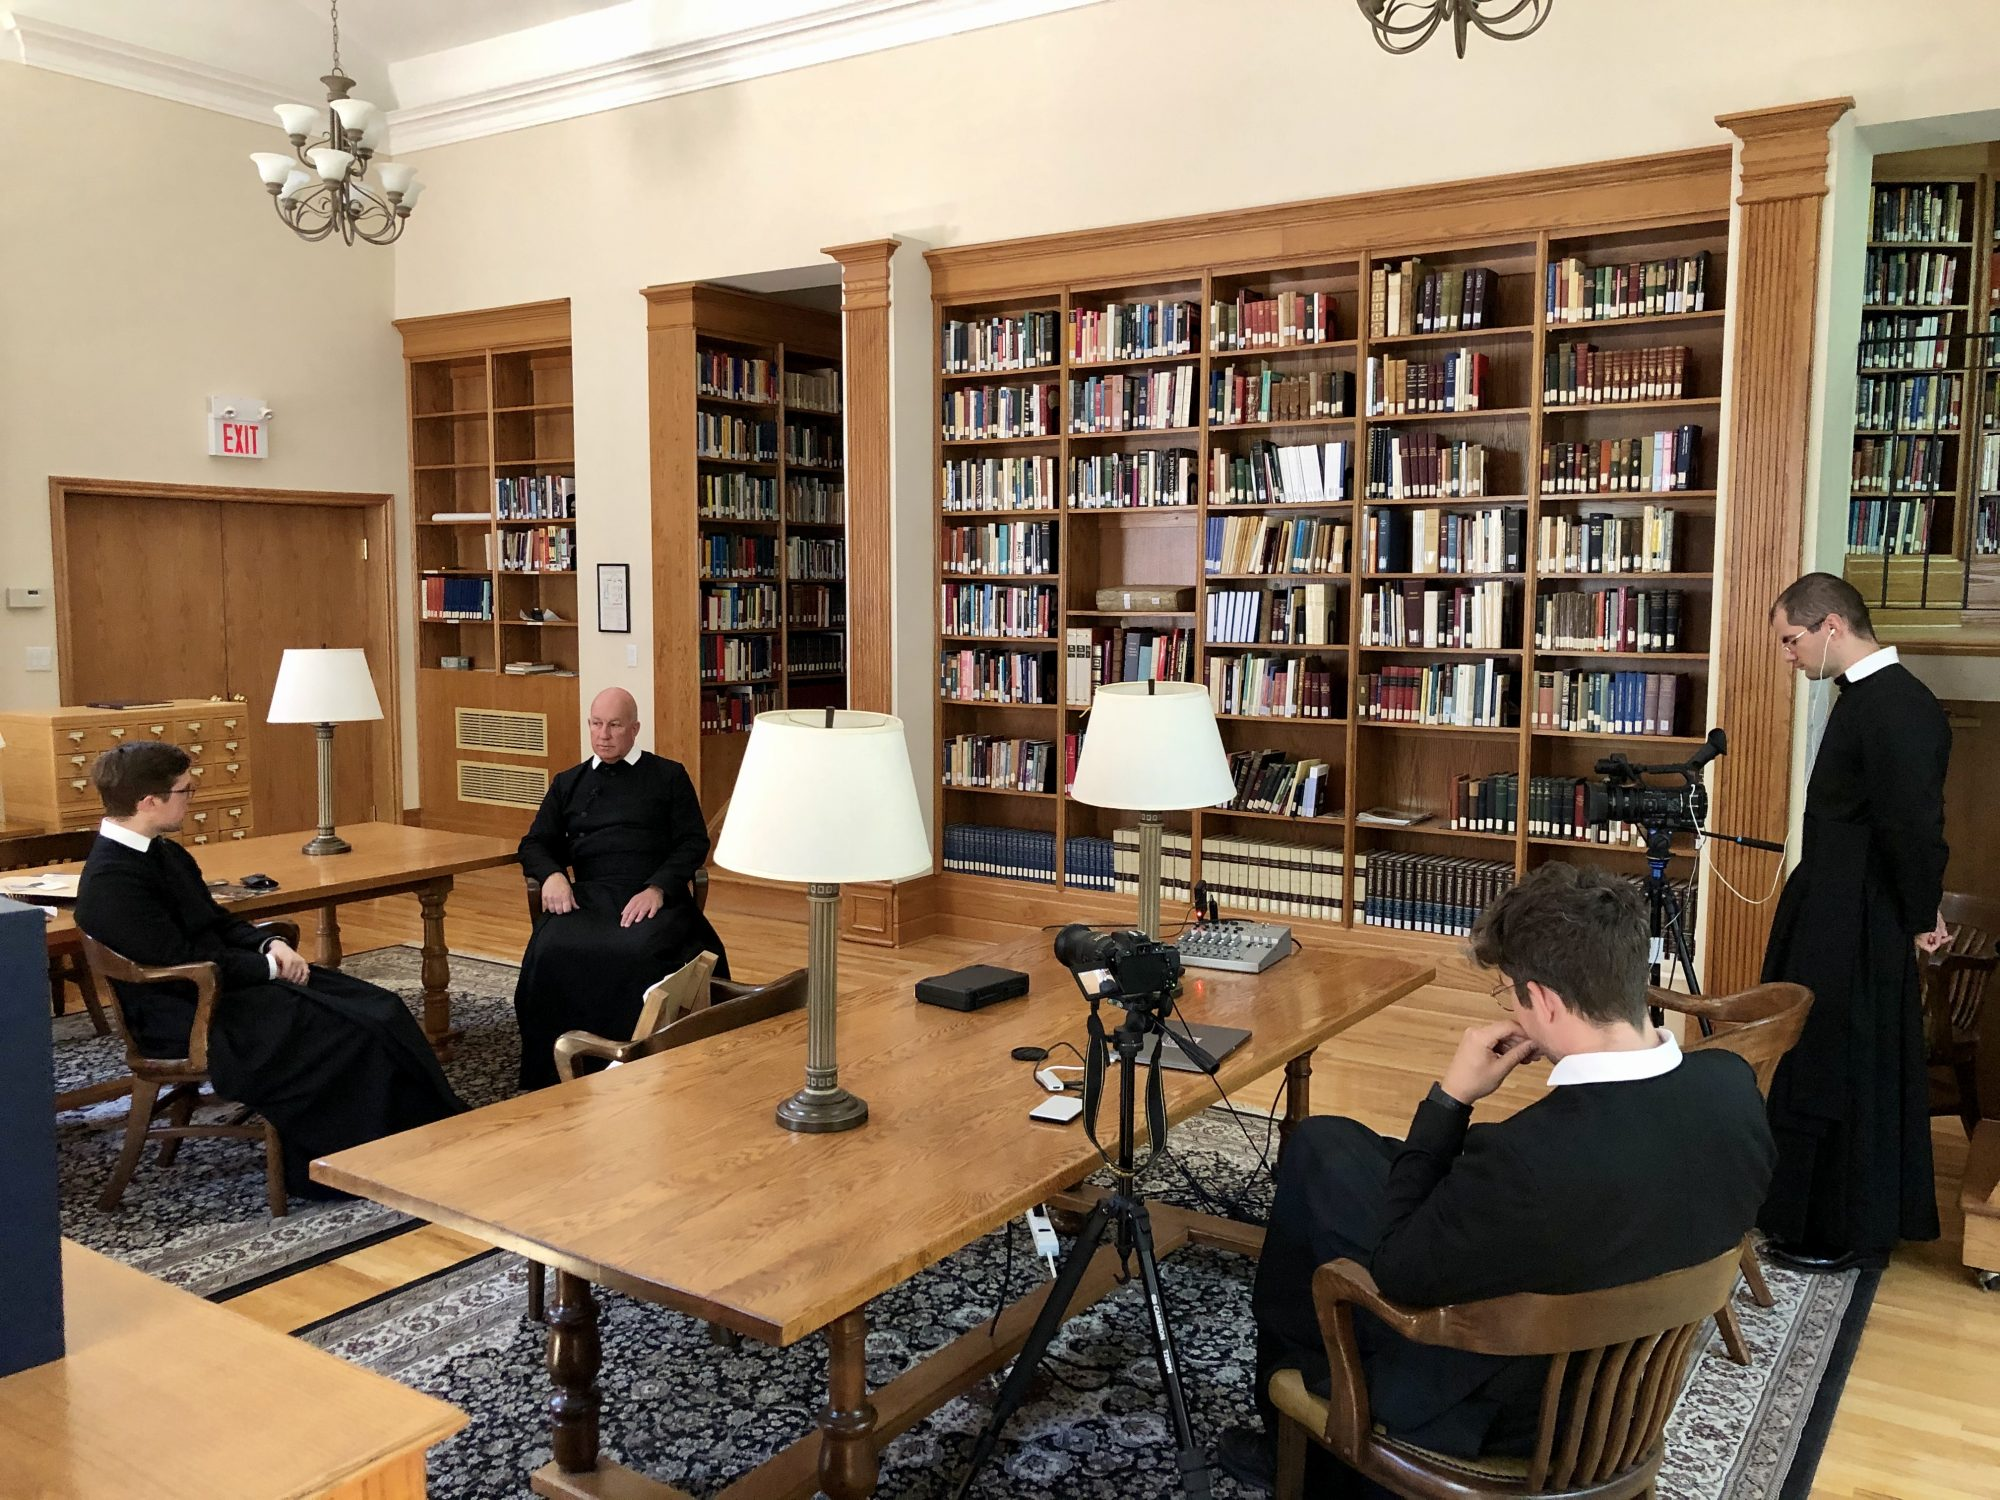 Br Carter and Br Bruno film Fr Michael interviewing Fr Juvenal in the library.